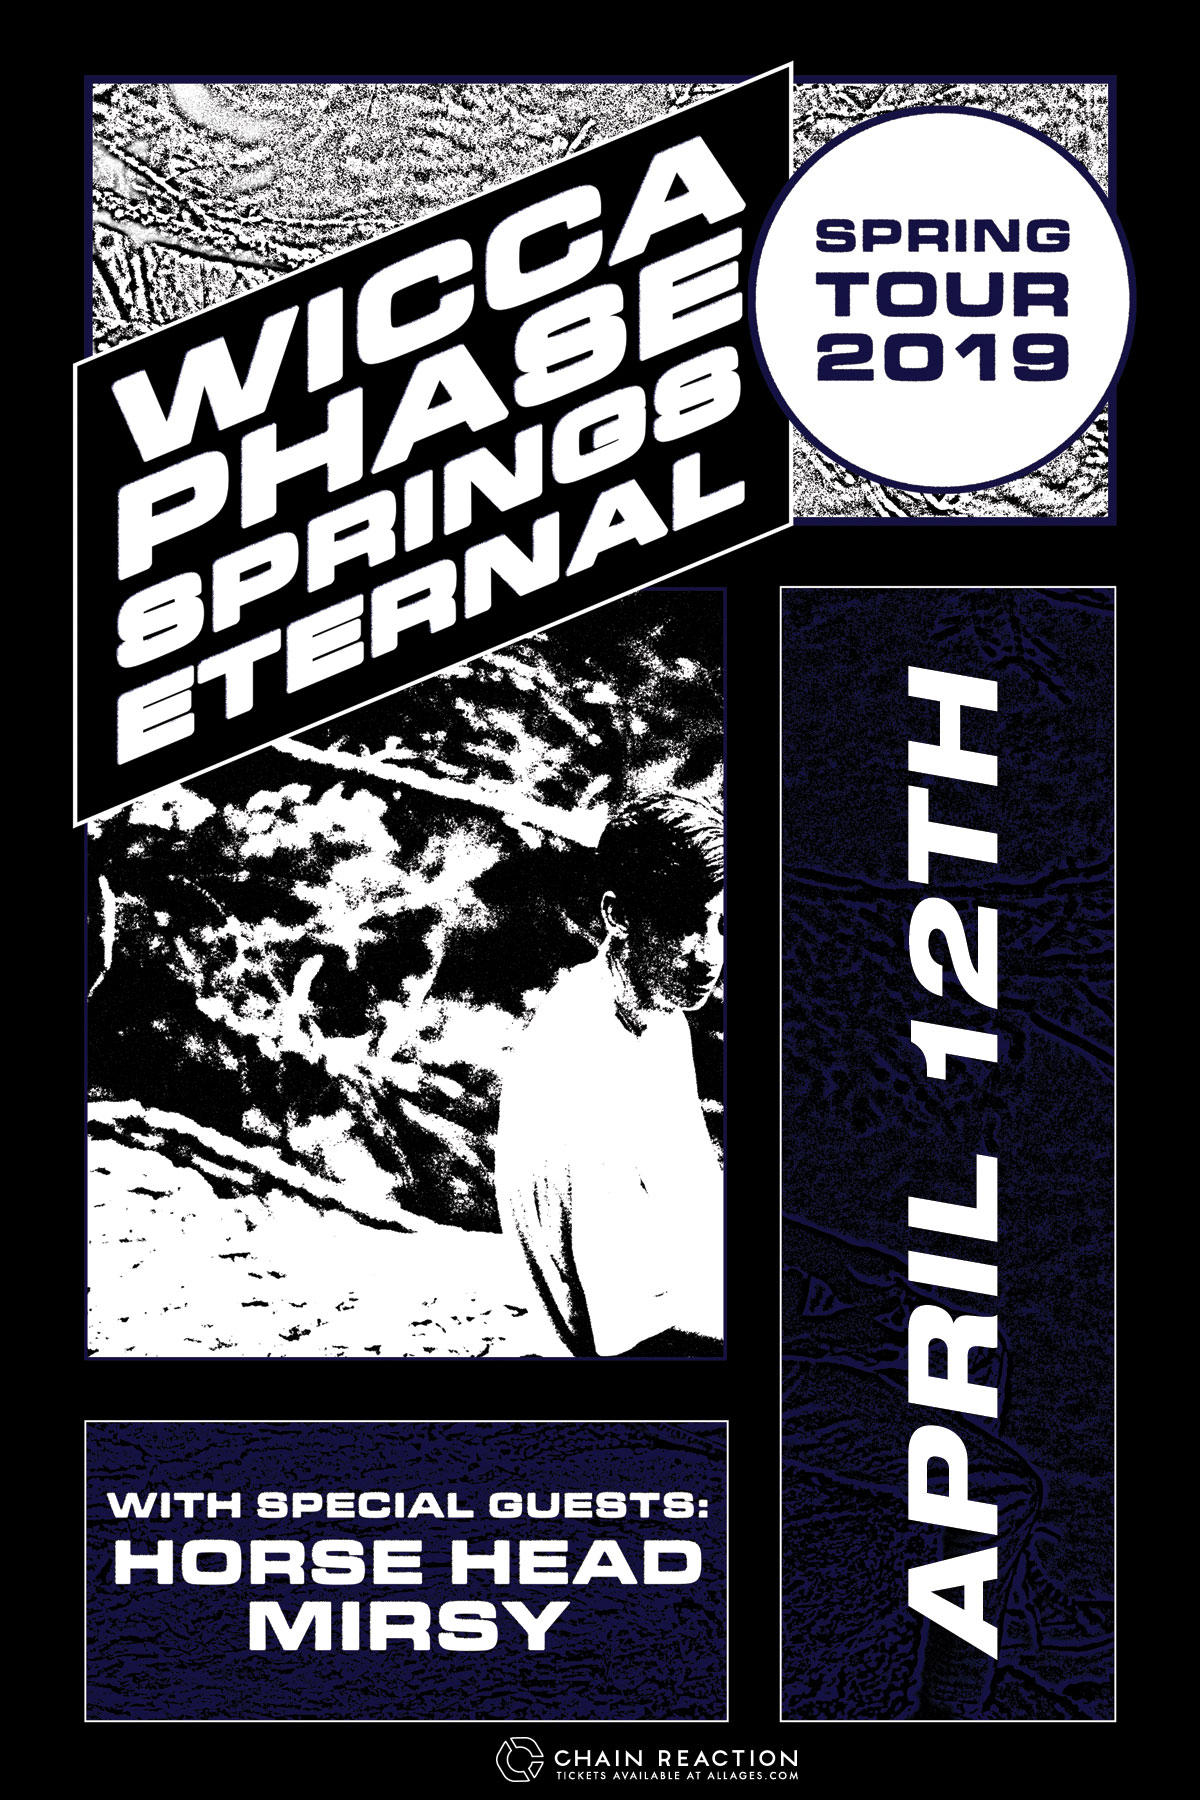 18ae4ad81b Wicca Phase Springs Eternal